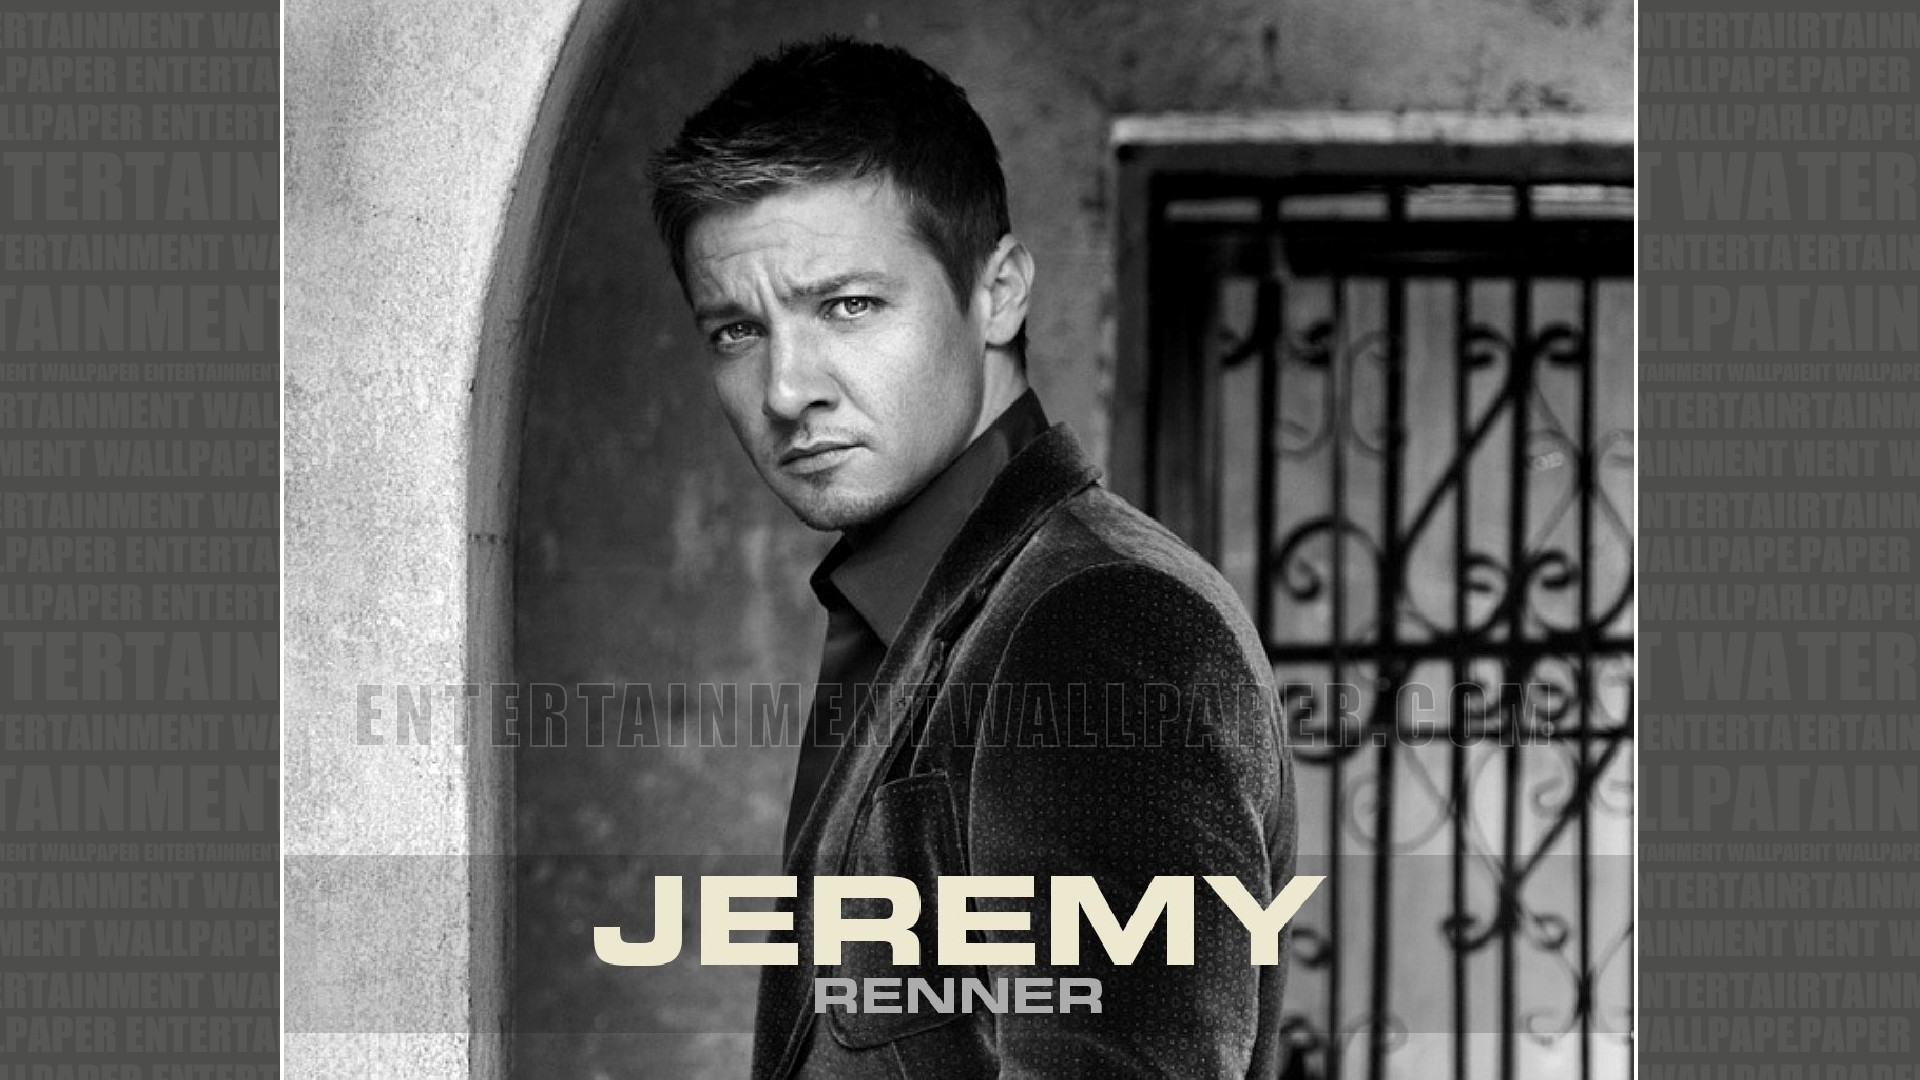 Jeremy Renner Wallpapers and Background Images   stmednet 1920x1080